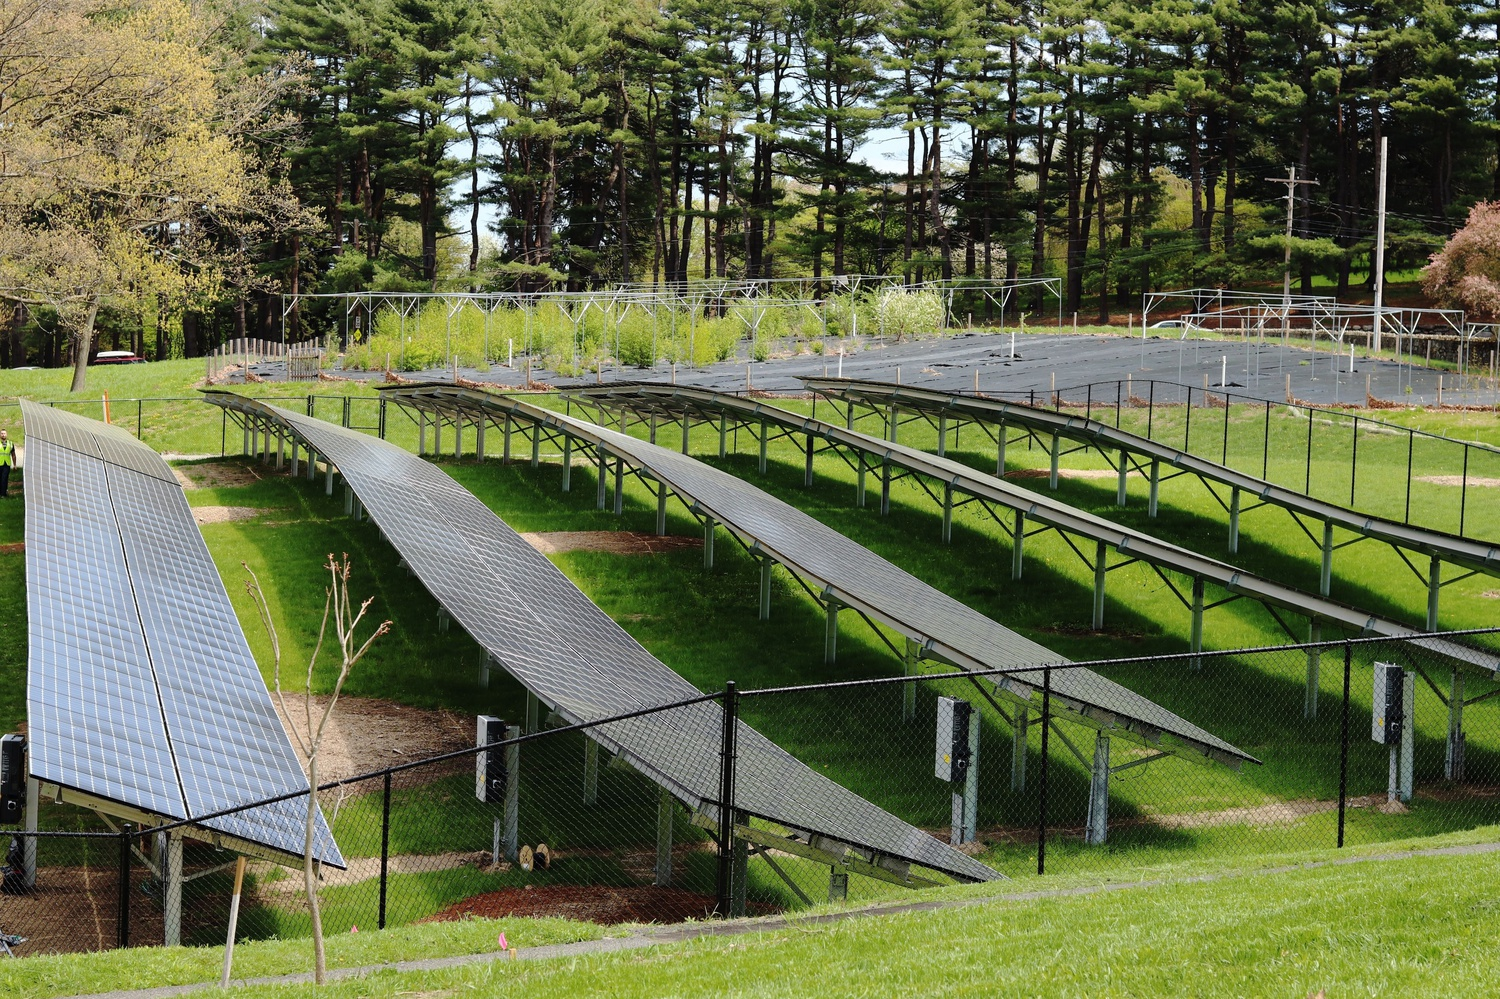 The Arnold Arboretum is in the process of installing new solar panels to generate energy as part of their mission to lower their carbon footprint.